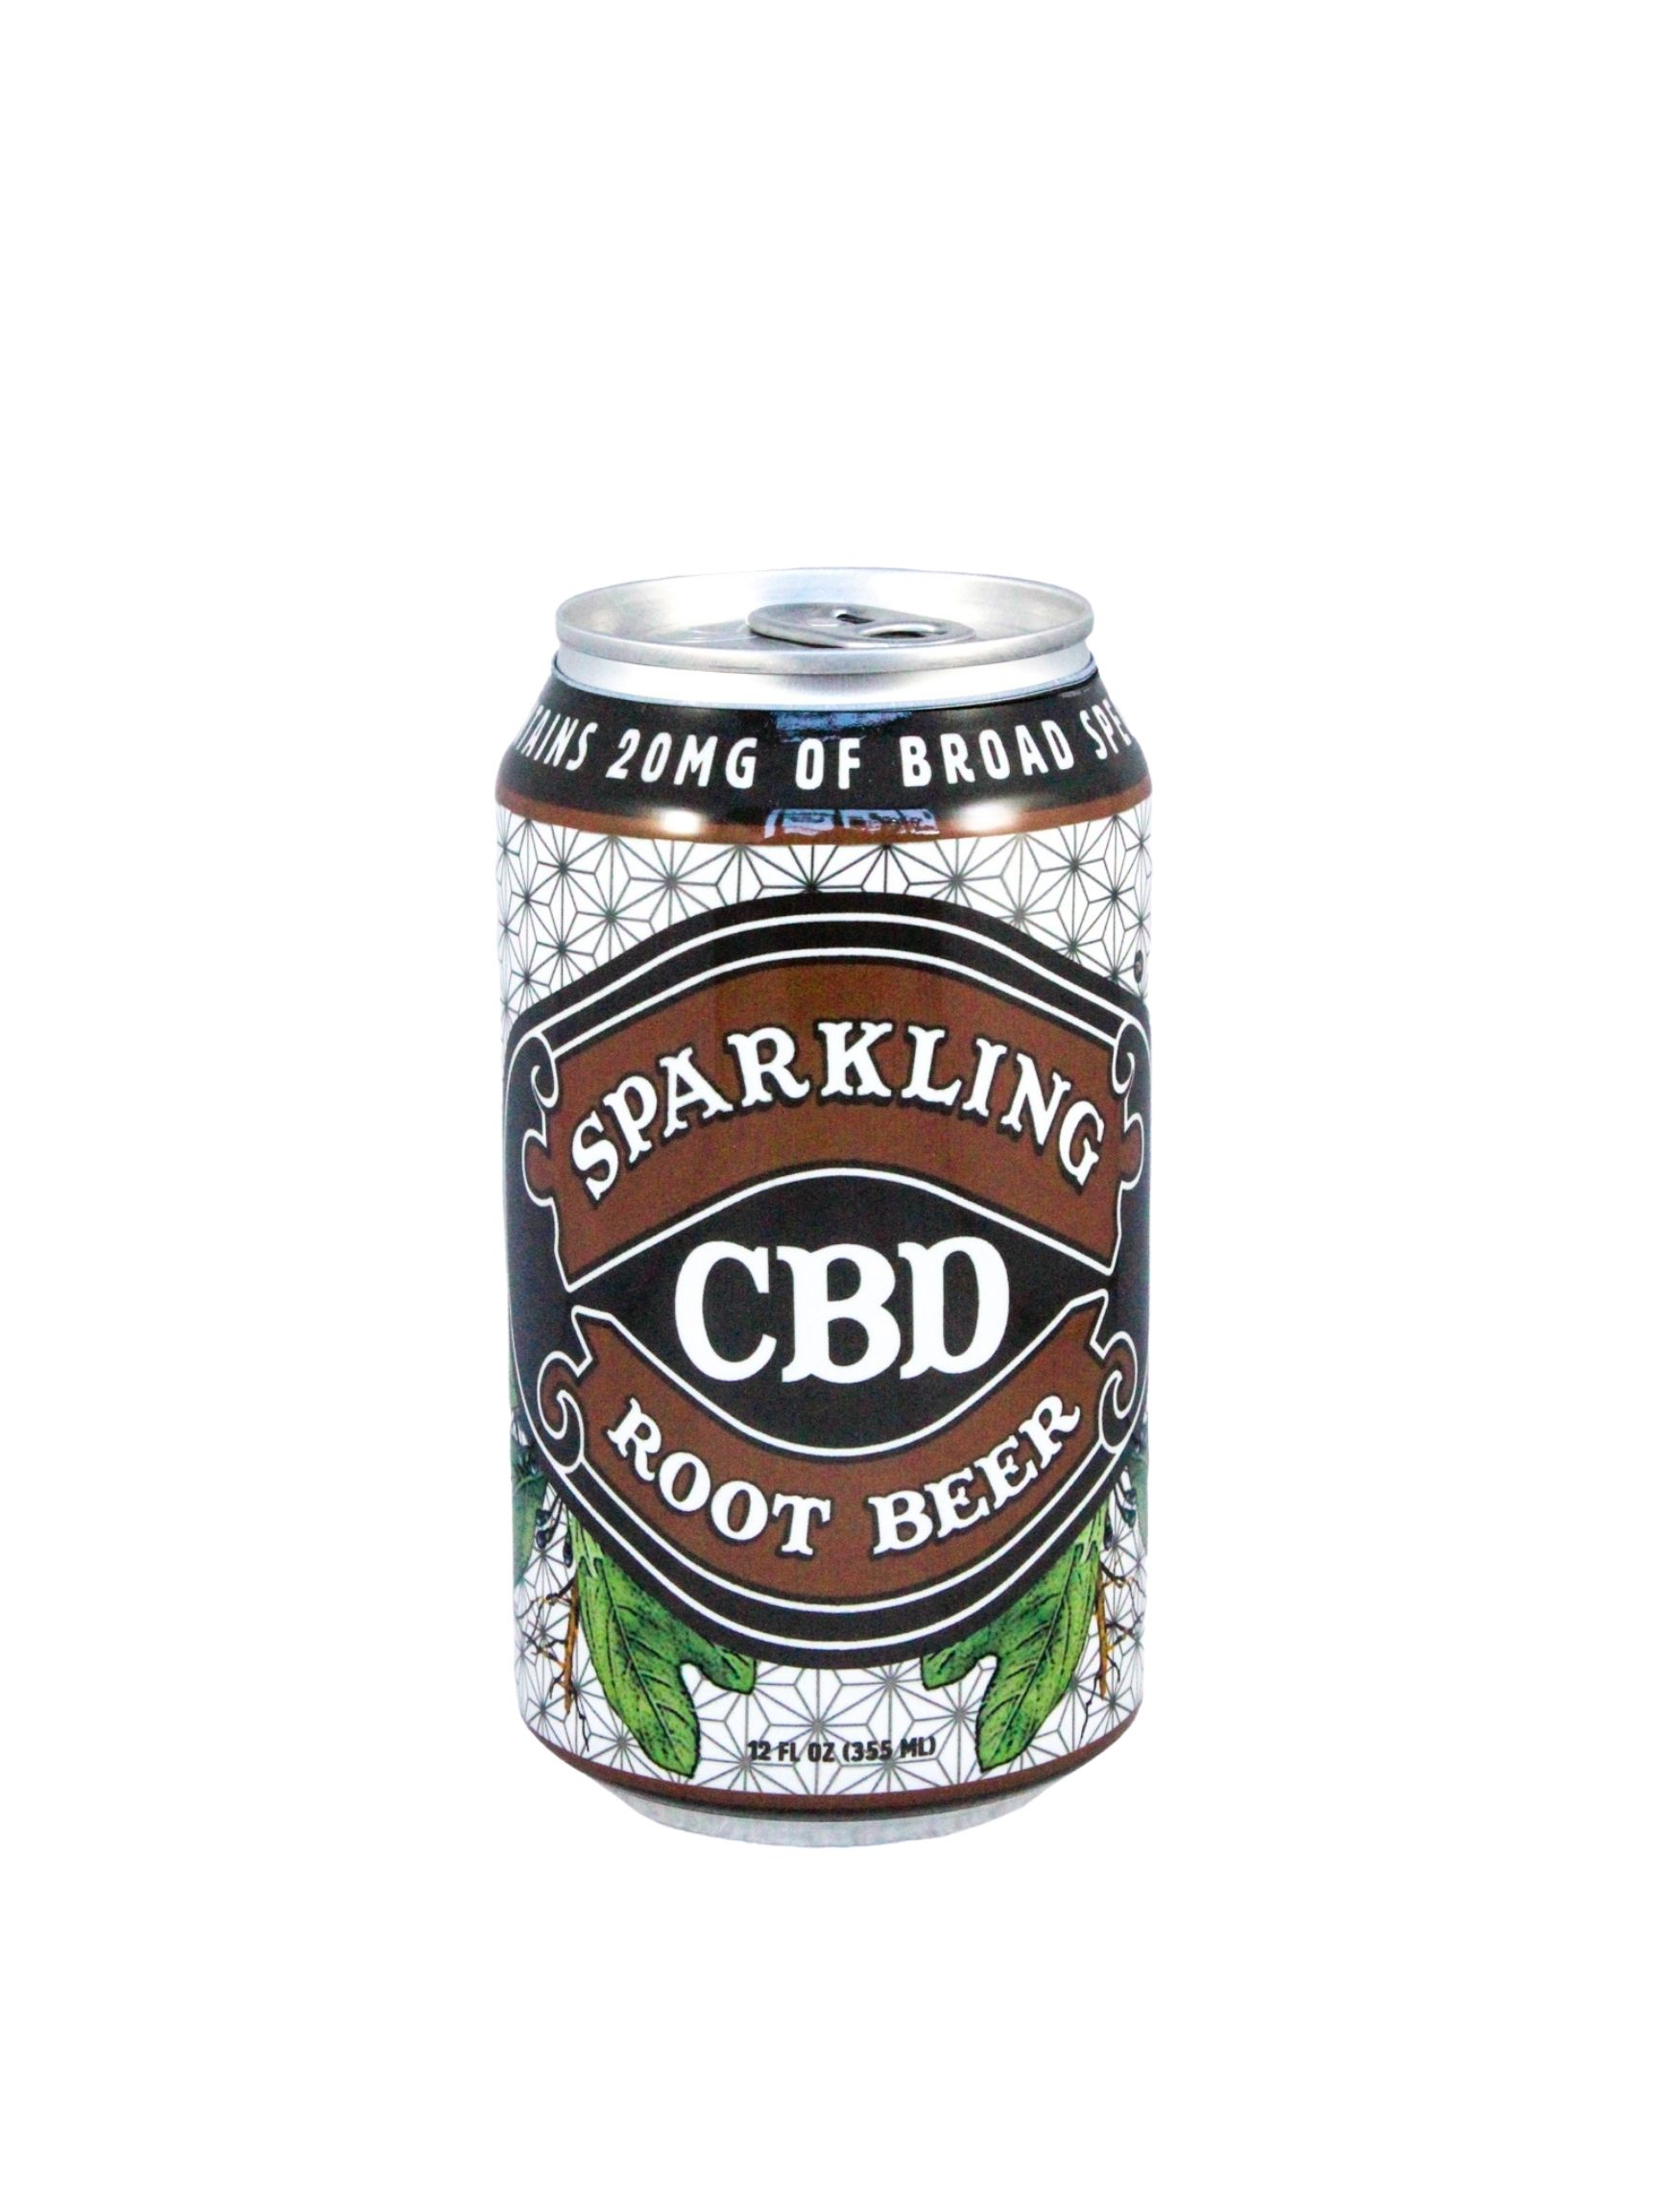 Image of Sparkling CBD – Root Beer Soda